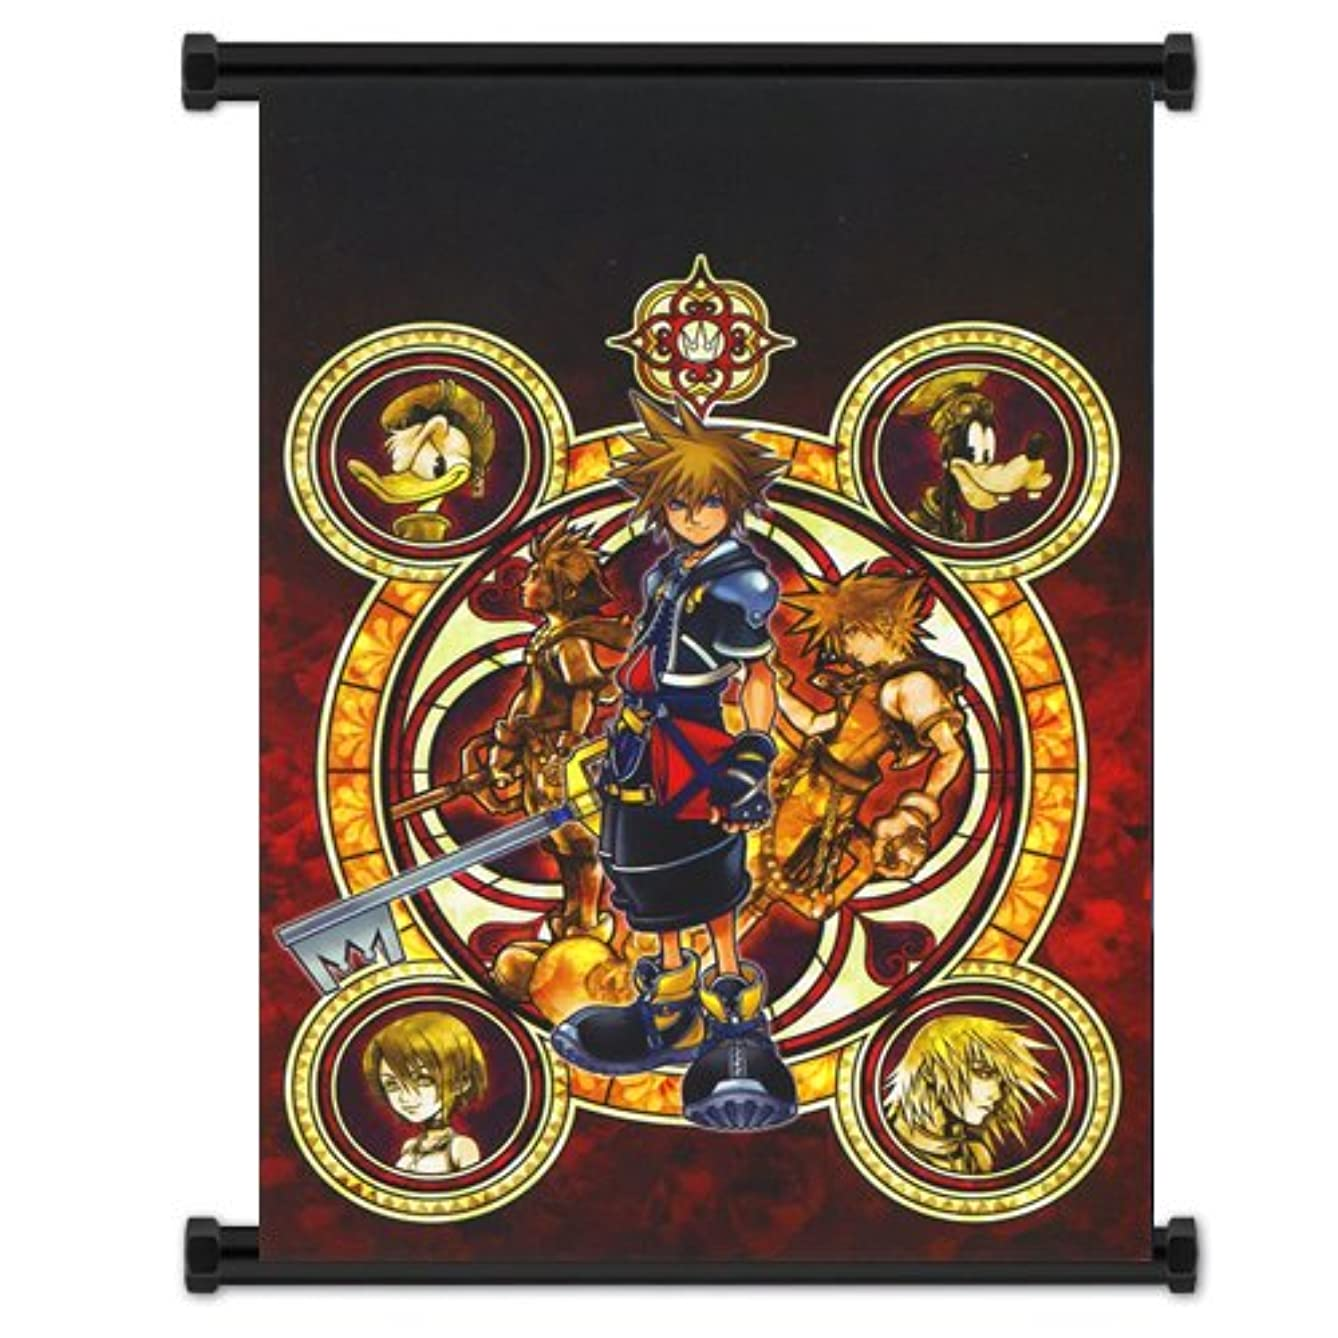 1 X Kingdom Hearts Game Fabric Wall Scroll Poster (16